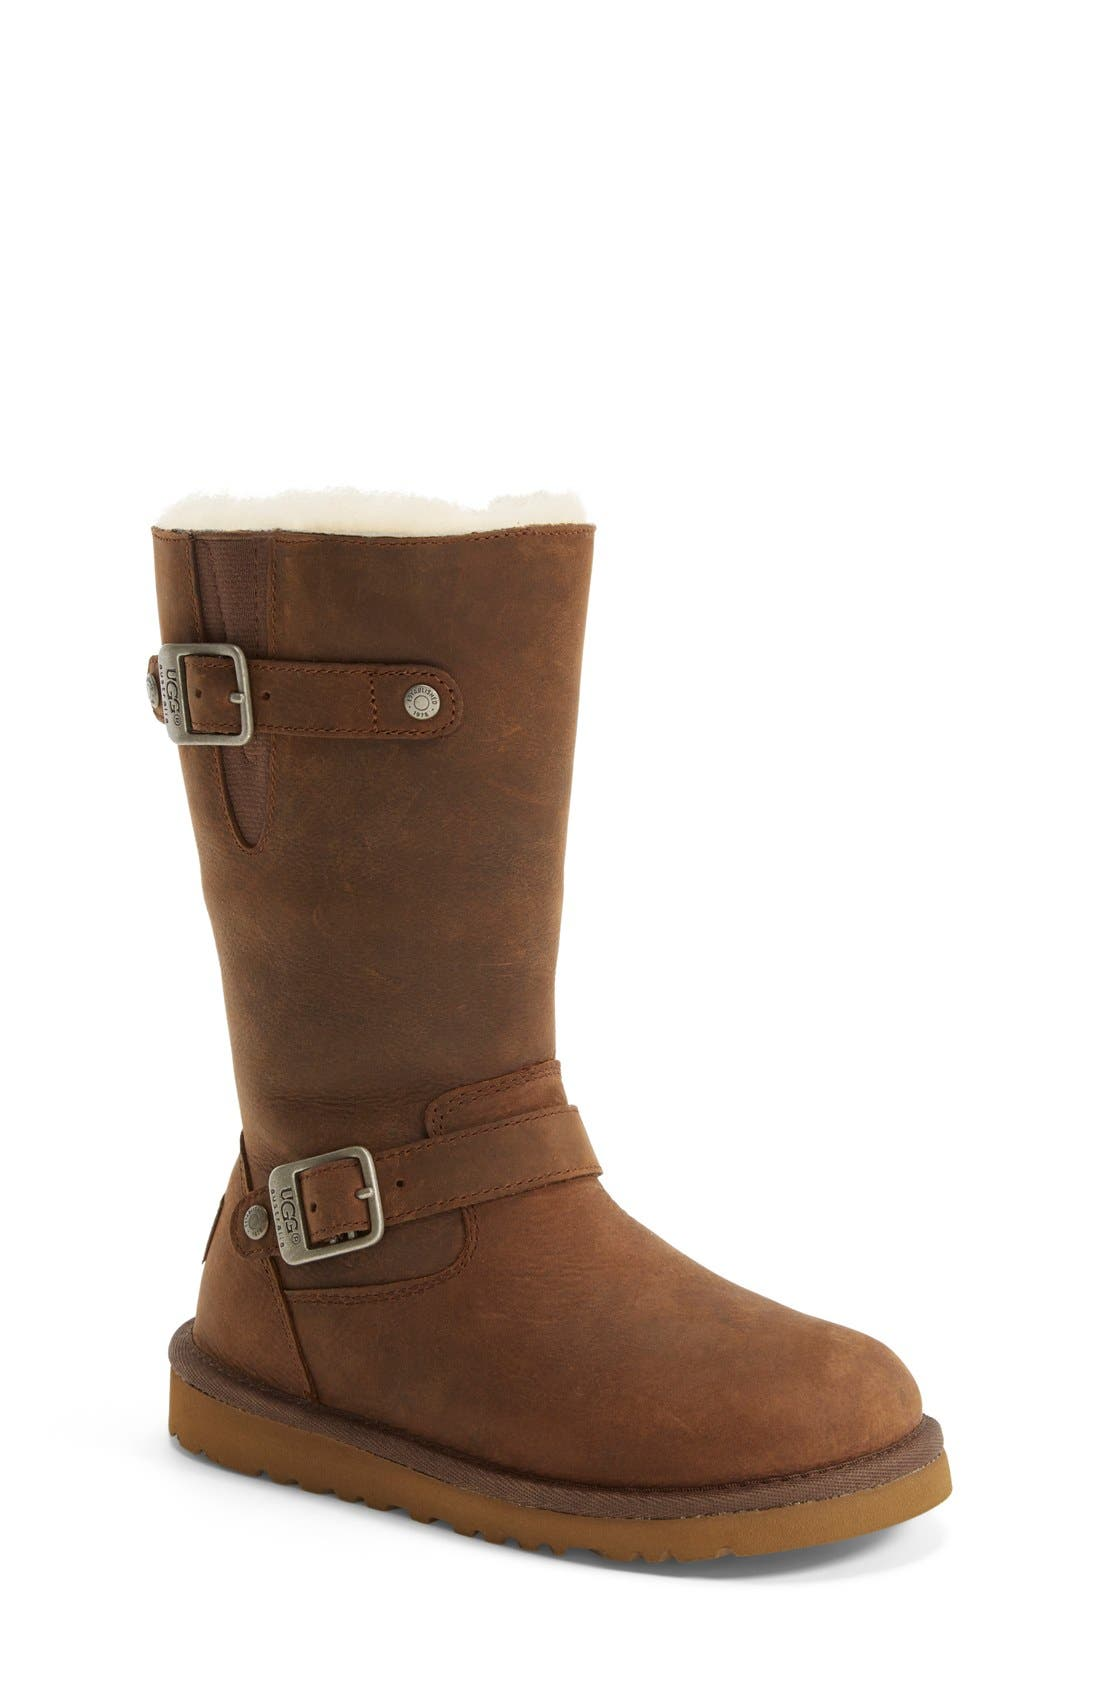 Main Image - UGG® 'Kensington' Boot (Toddler, Little Kid & Big Kid)